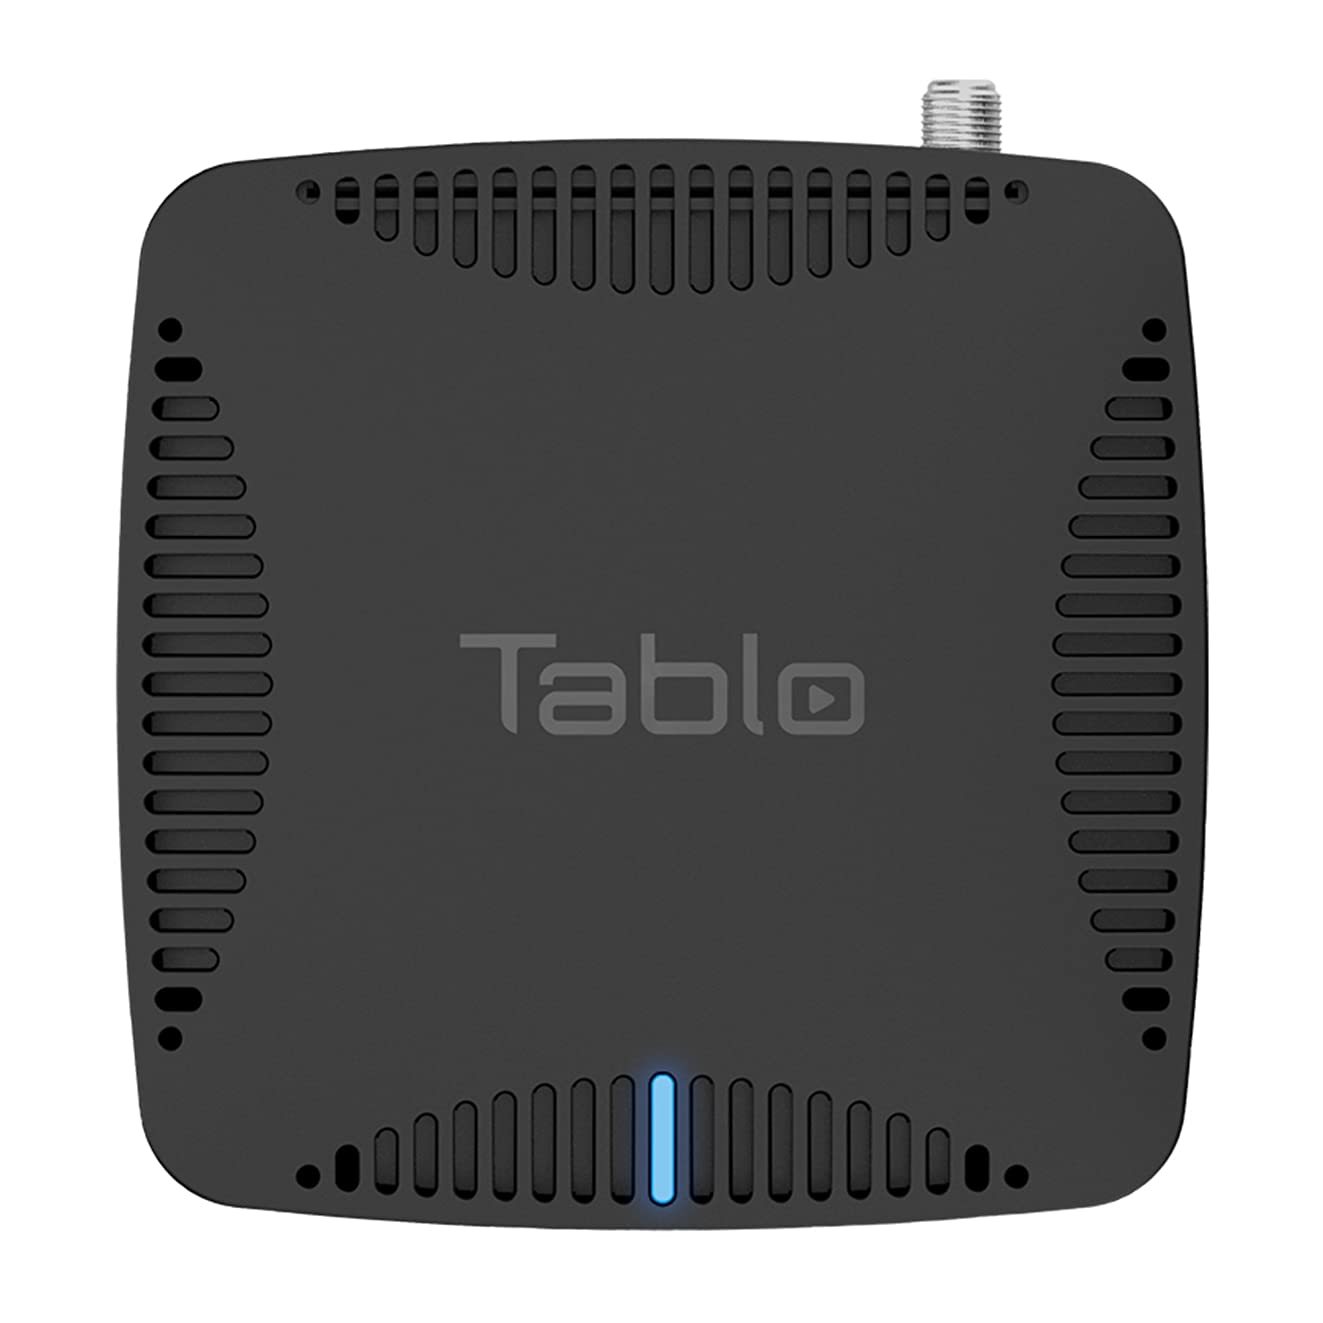 Tablo Dual LITE OTA DVR for Cord Cutters - with WiFi - for use with HDTV Antennas